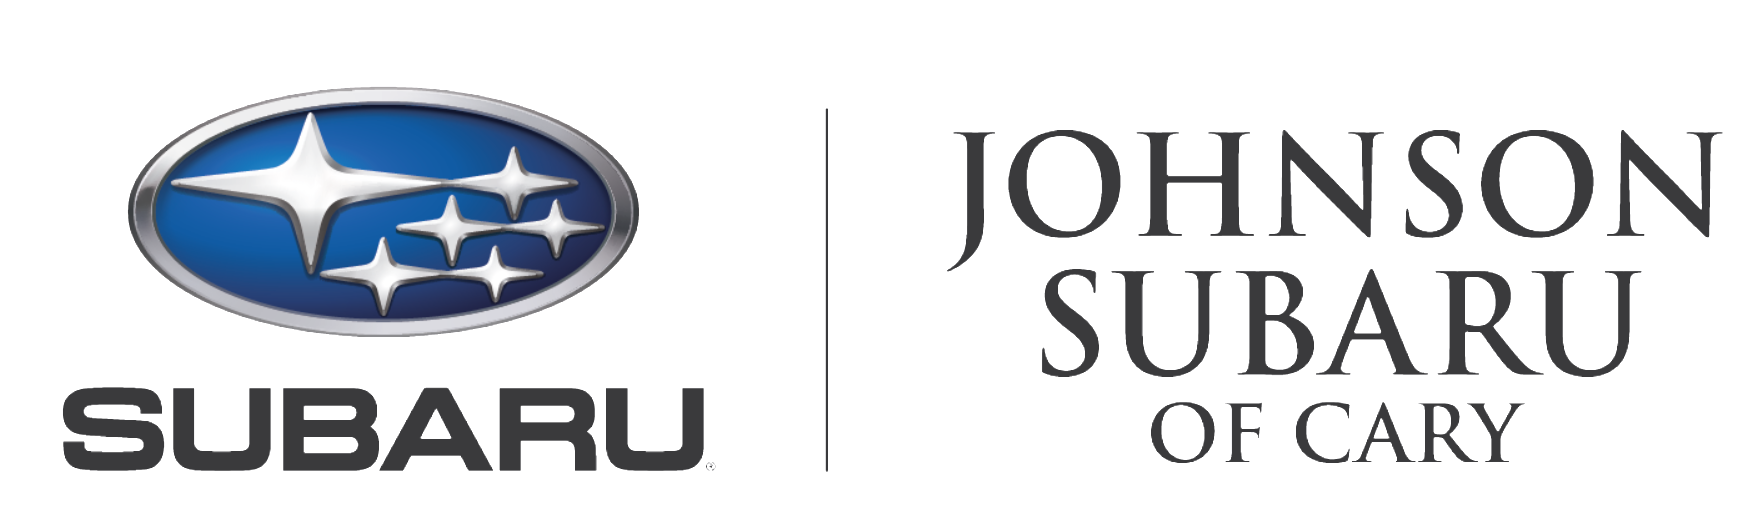 Johnson Subaru Logo - Horizontal.PNG